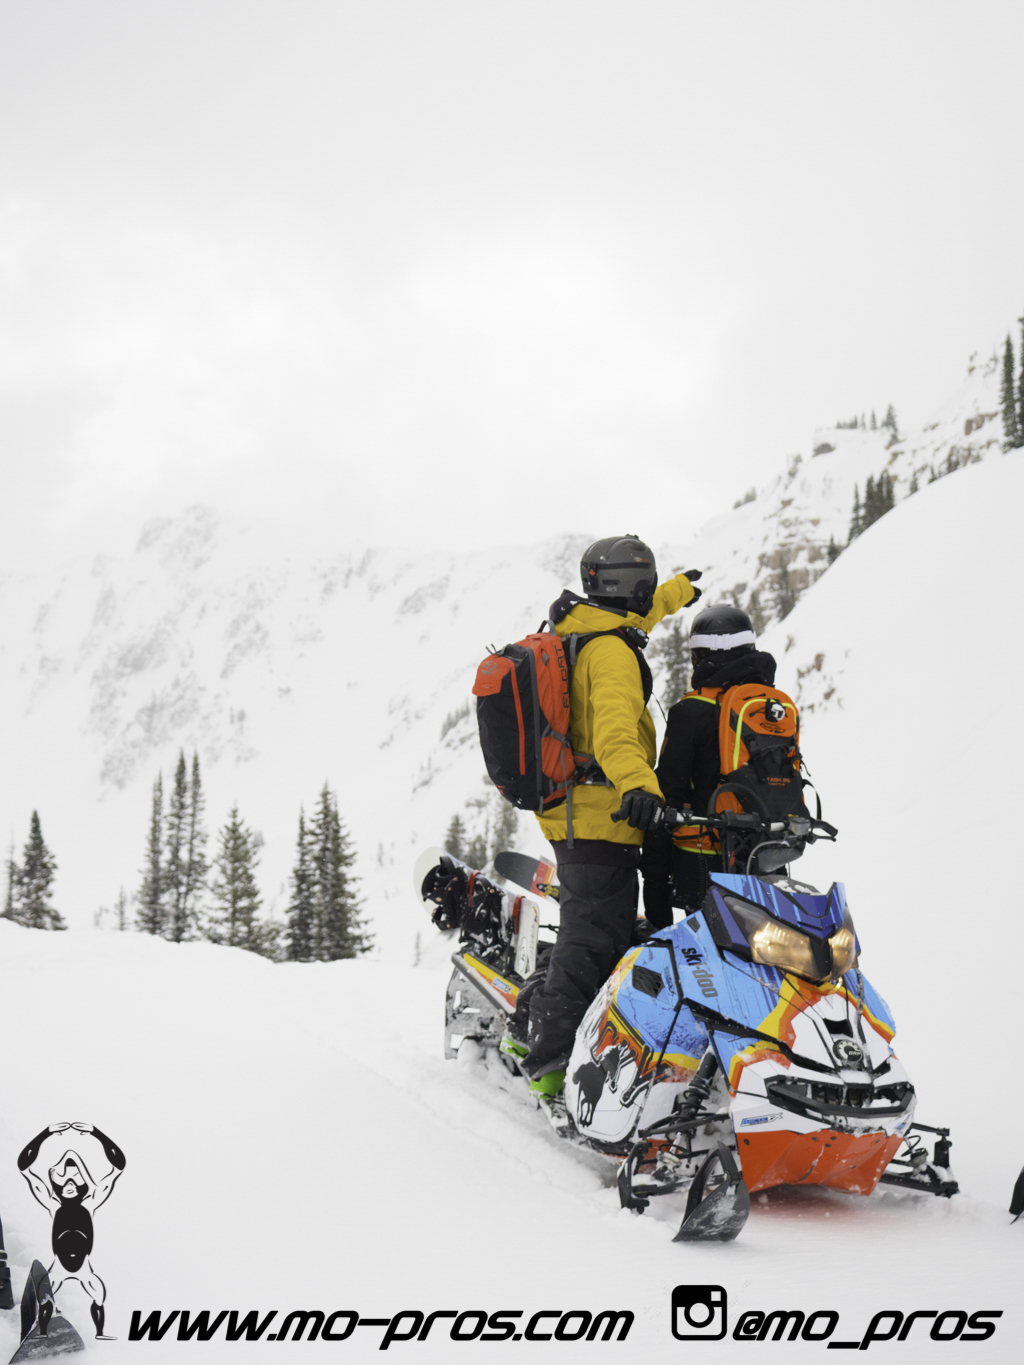 89_Snowbike_Timbersled Rack_Tsaina Rack_CFR rack_Cheetah Factory Racing_Snowboard rack_snowboard_snowmobile bag_Snowmobile_timbersled bag_gas Rack_Gear_Gun Rack_LinQ Snowboard Ski_Ski_Snowboarding_Ti.jpg